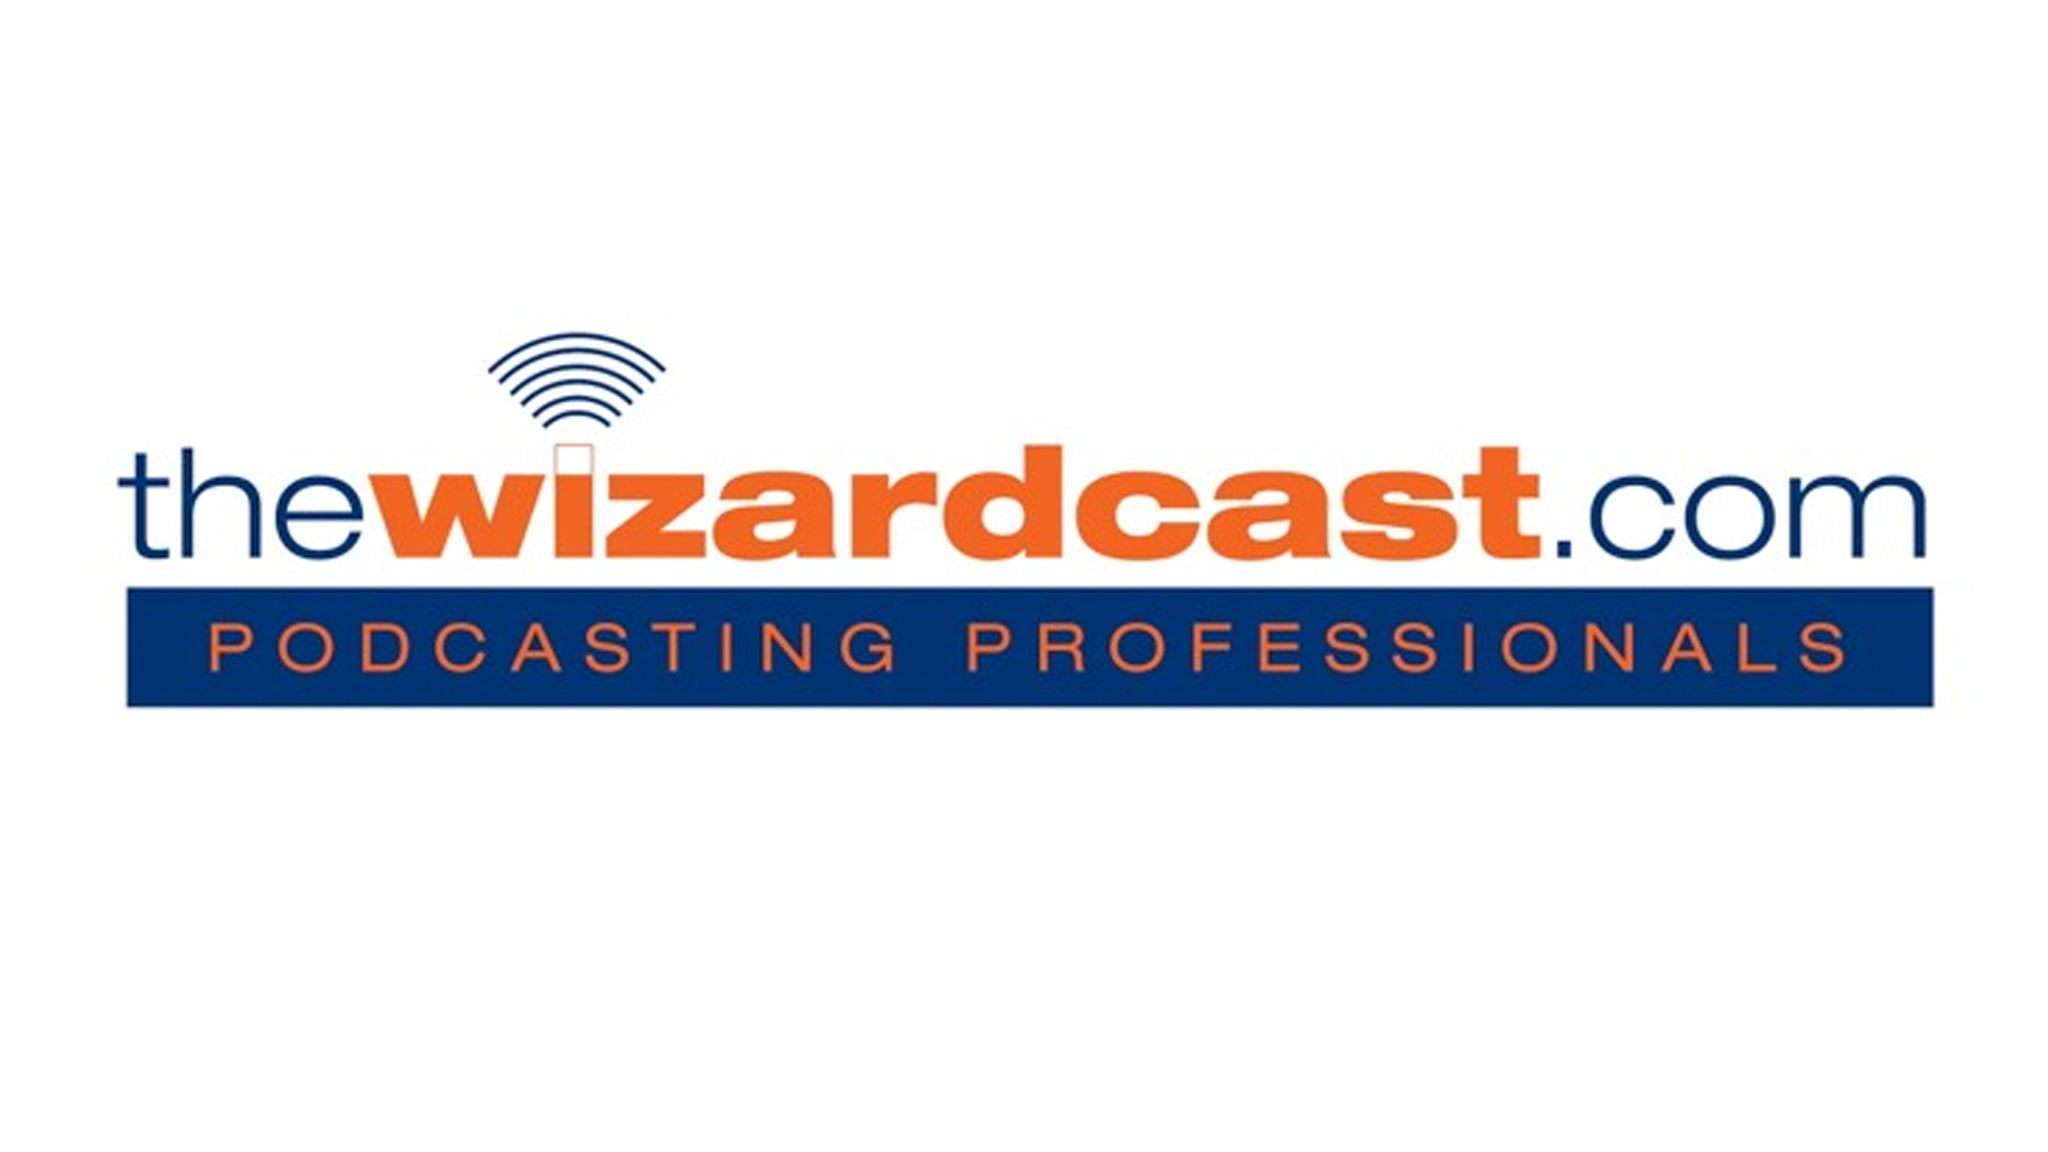 The Wizardcast